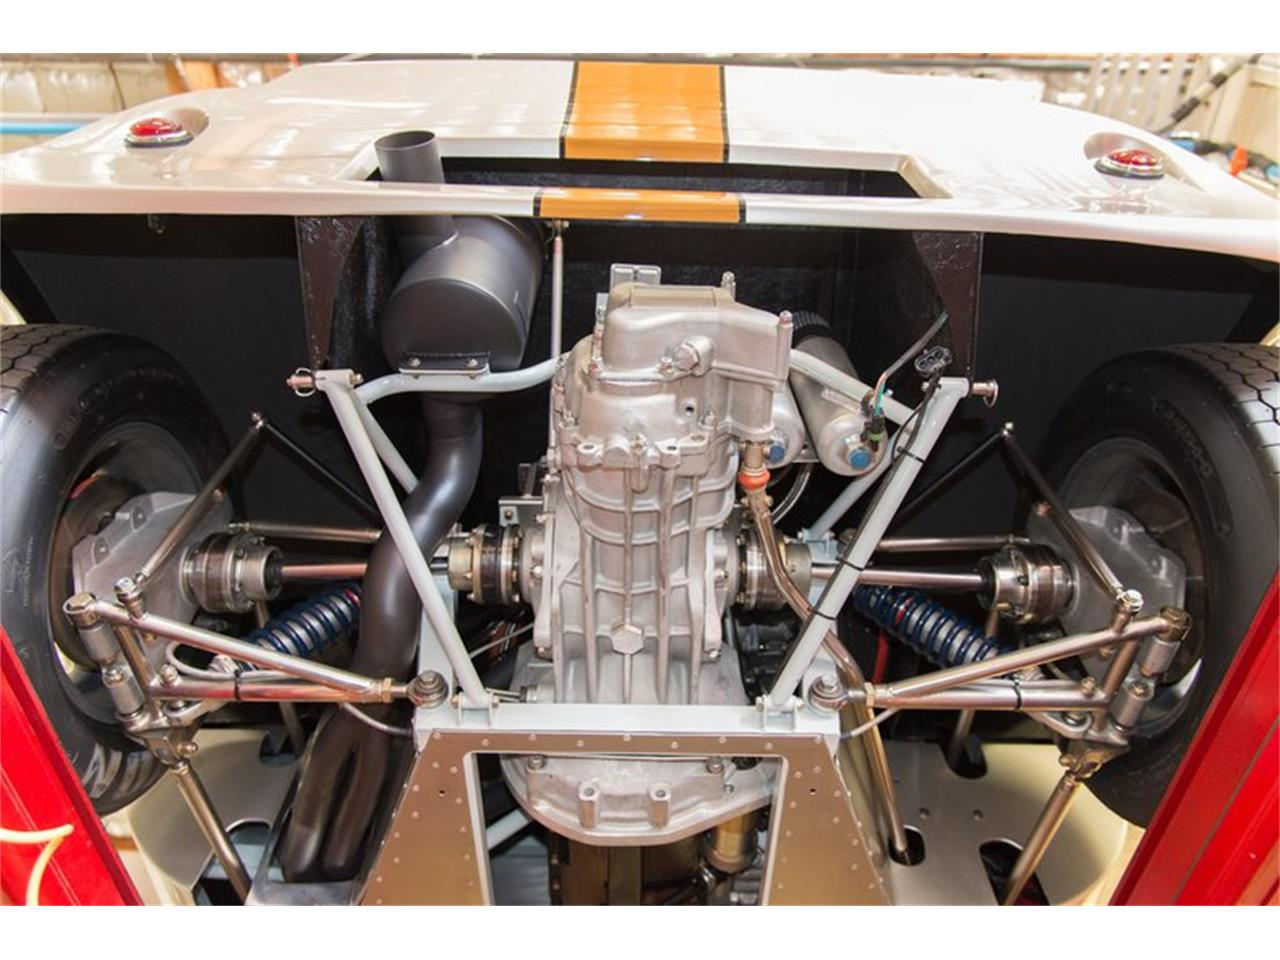 1967 Ginetta G12 for sale in Scotts Valley, CA – photo 56